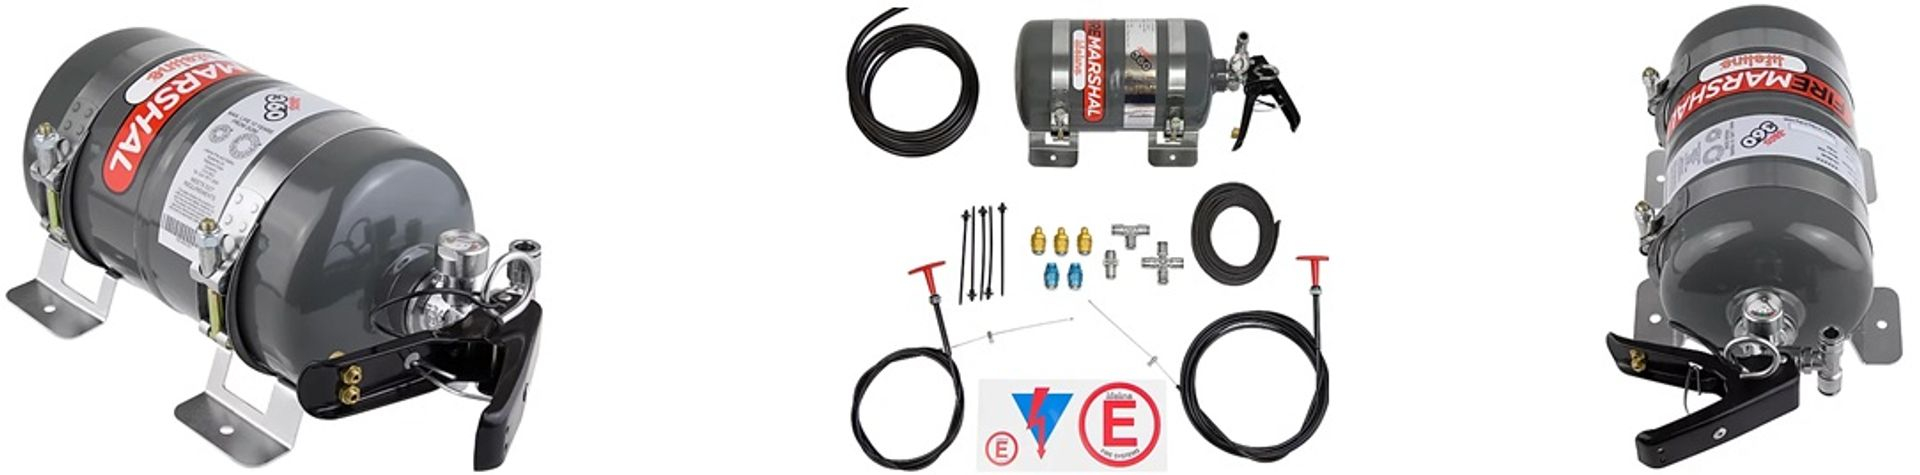 Lifeline Zero360 mechanical kit from vulcan racing